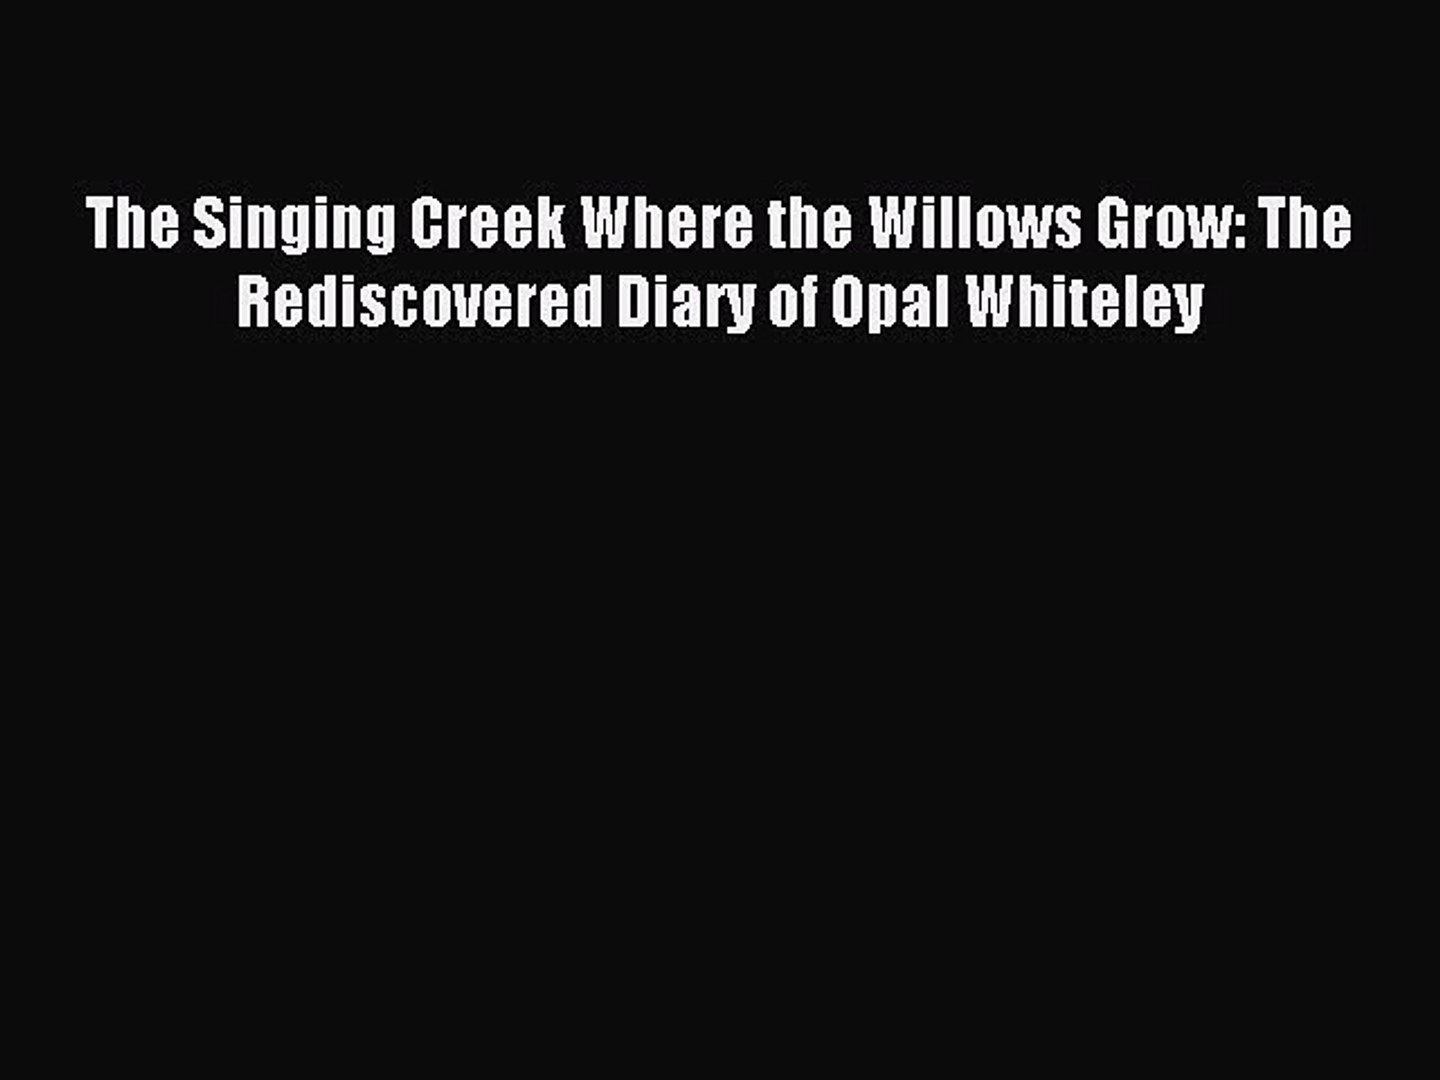 Read The Singing Creek Where the Willows Grow: The Rediscovered Diary of Opal Whiteley Ebook